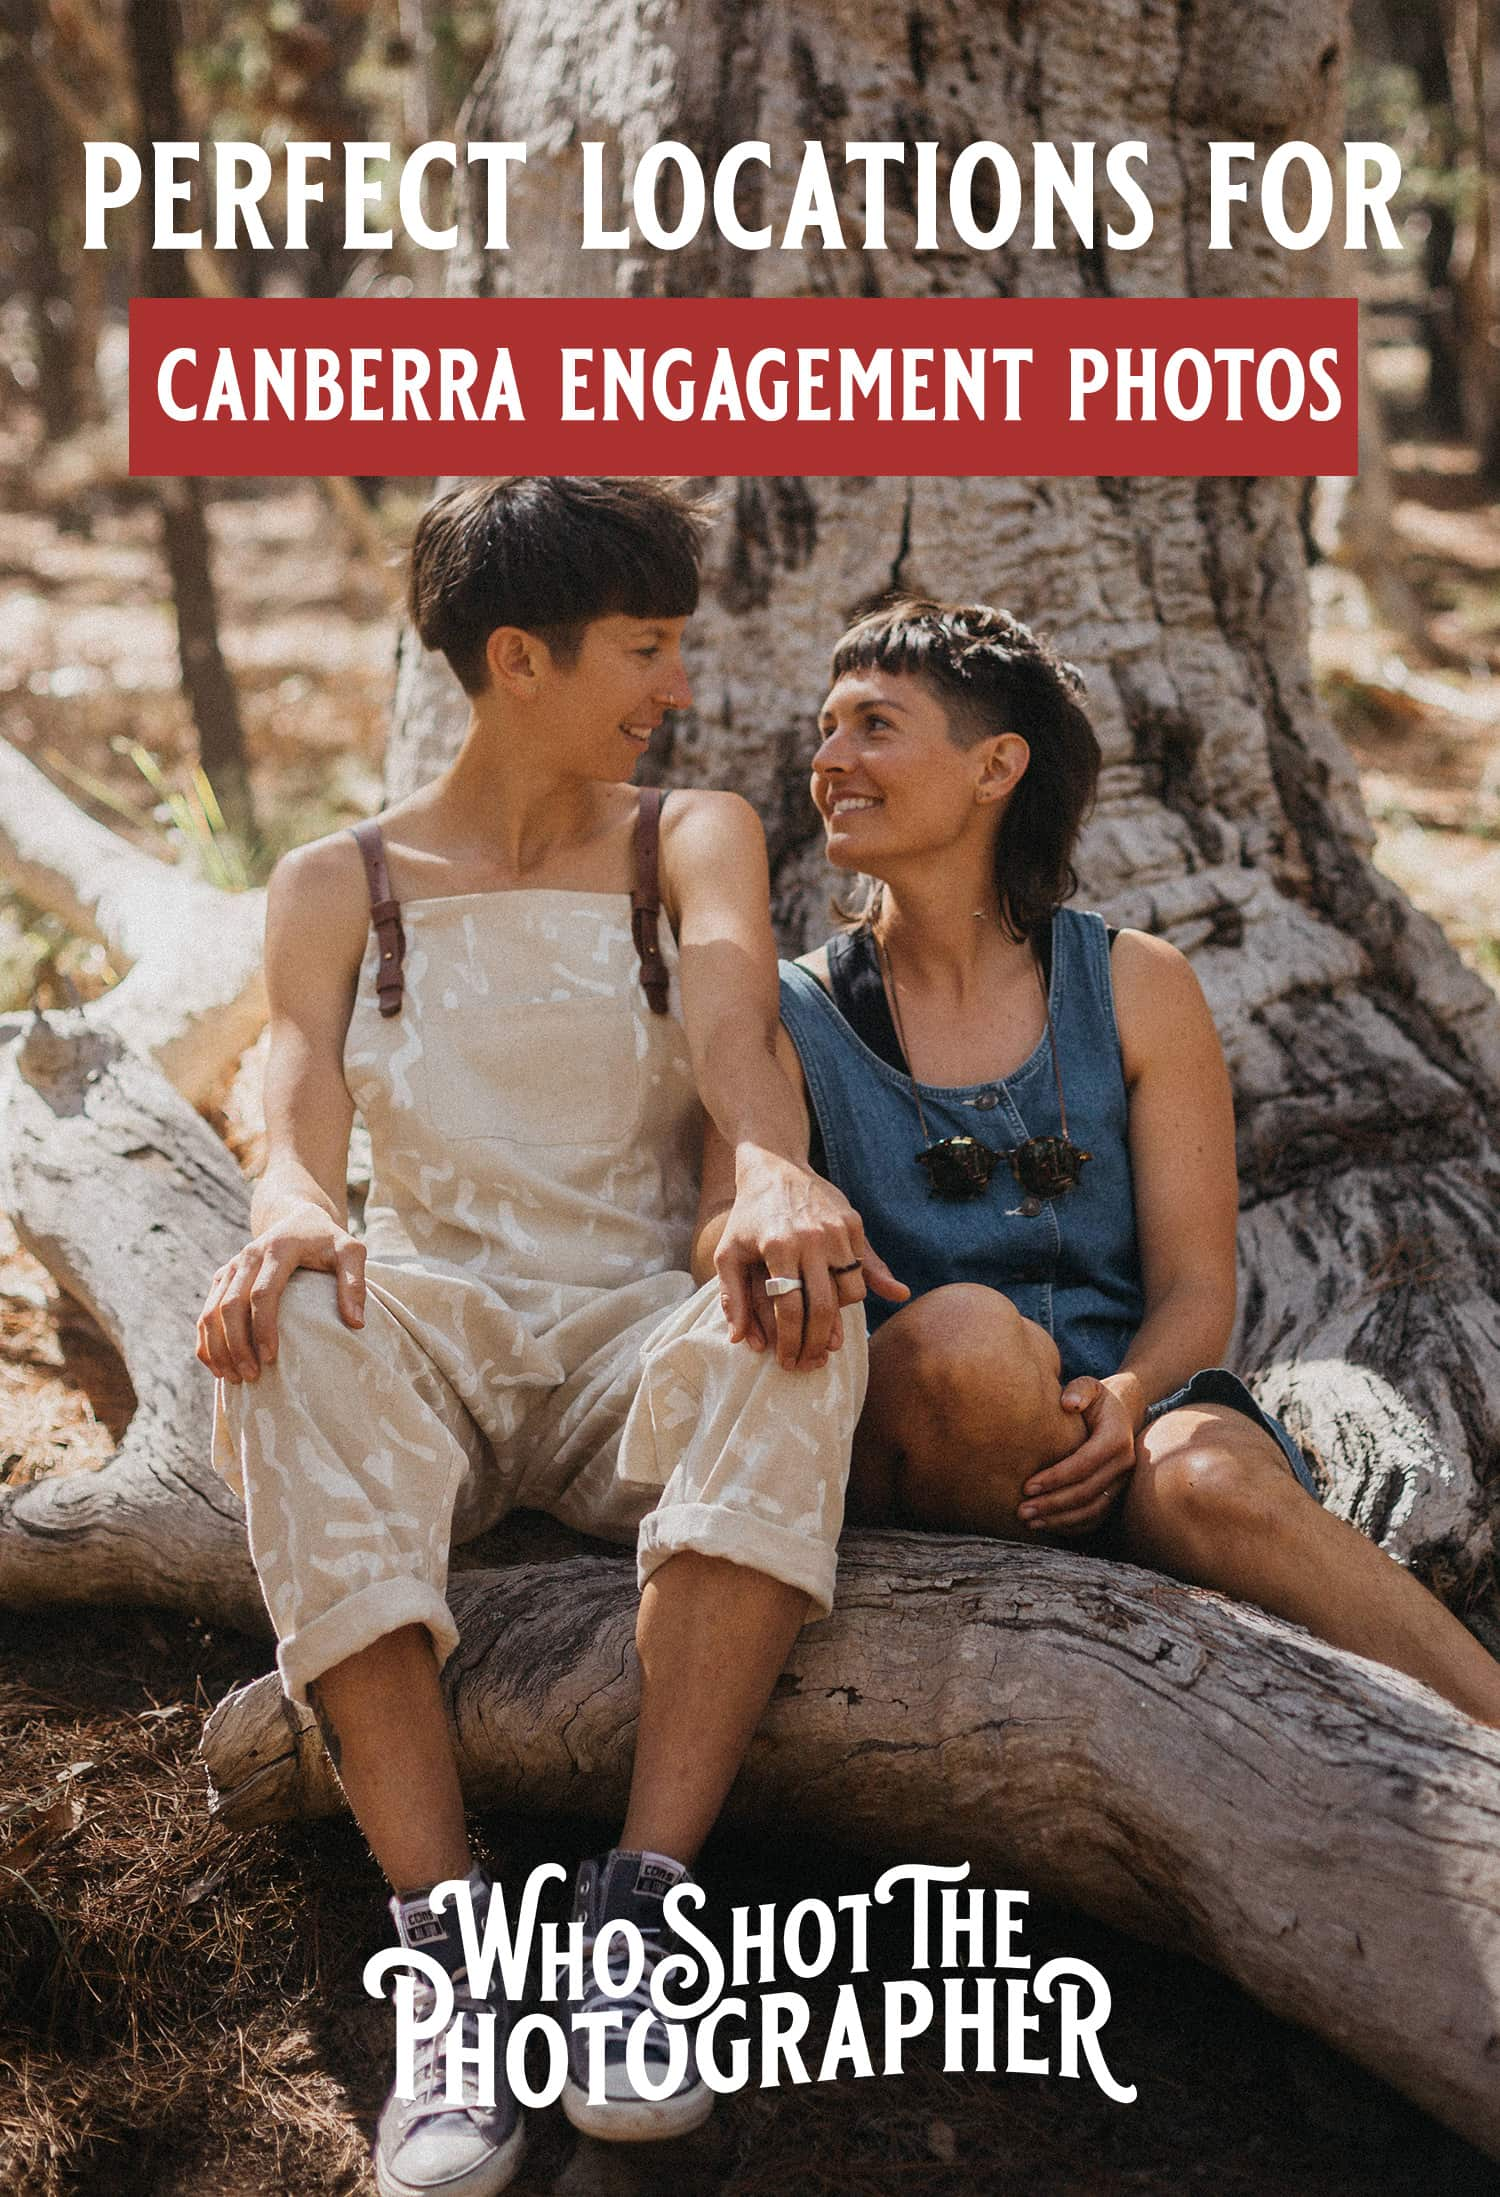 canberra engagement photos, Top 15 Canberra Engagement Photos Locations